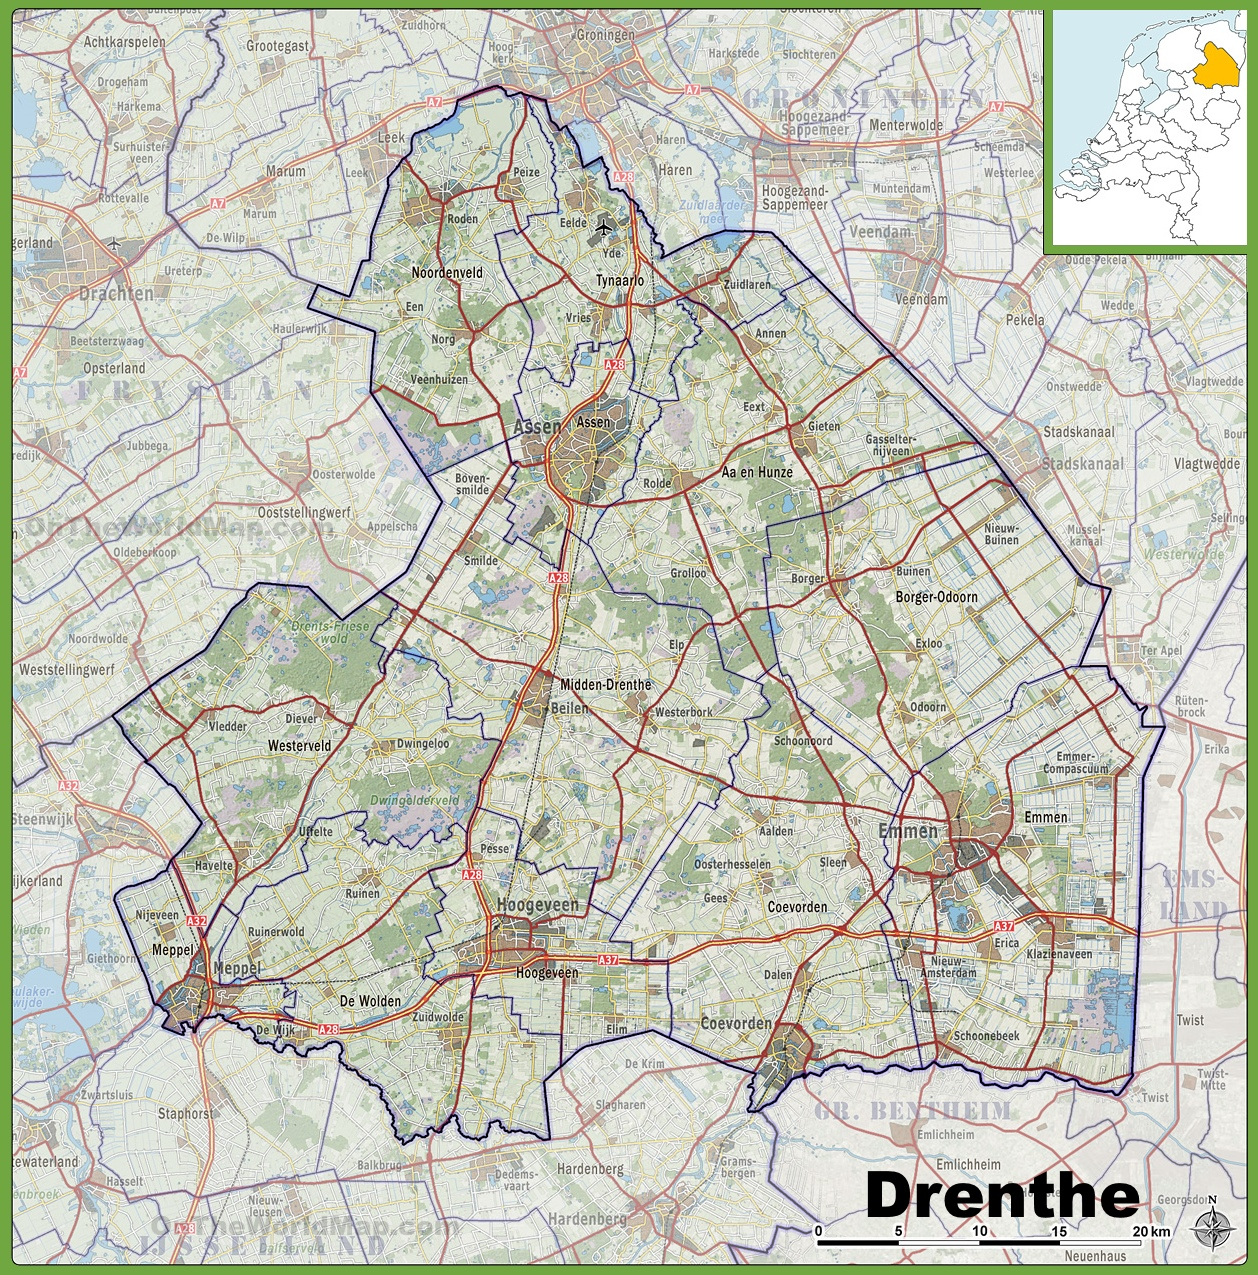 Map of Drenthe with cities and towns